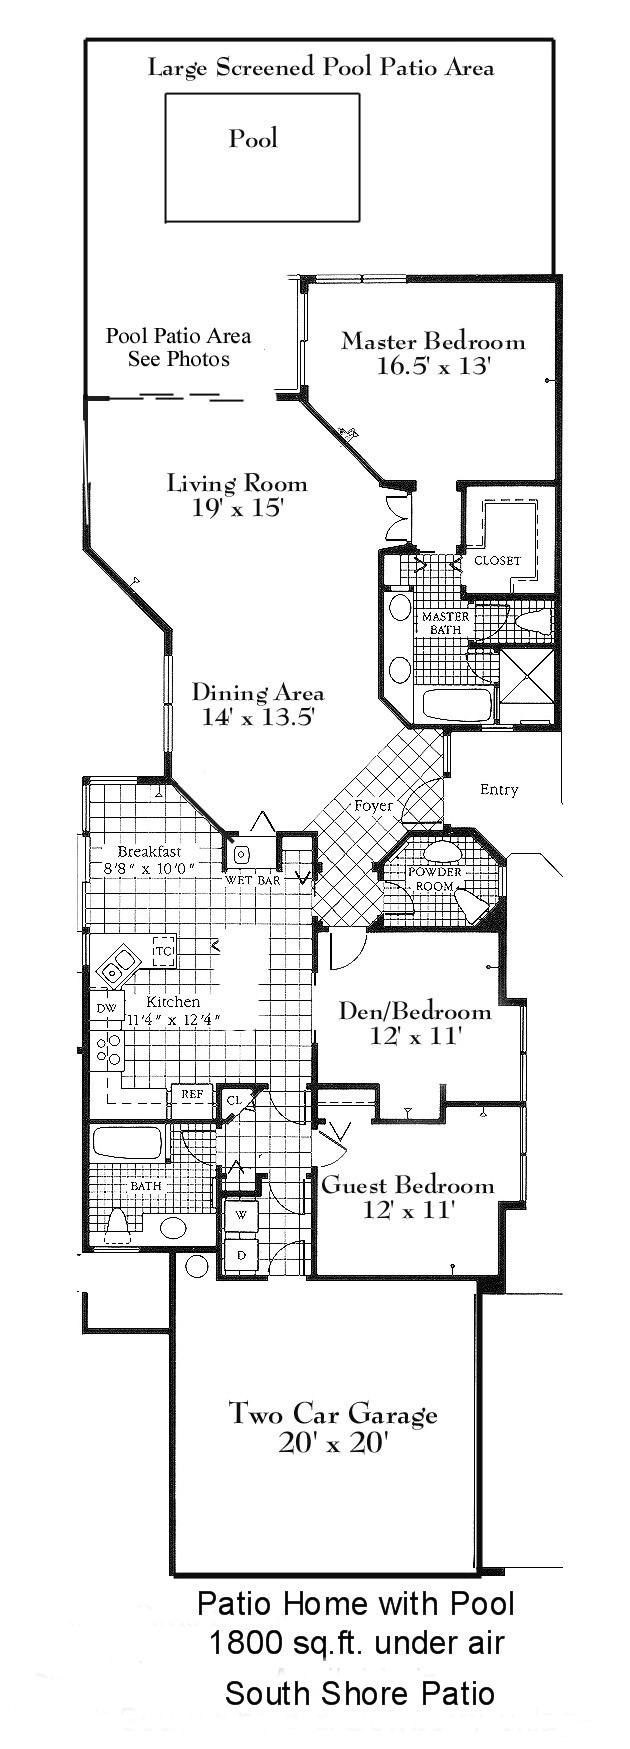 Patio home floor plans free gurus floor for Patio home designs